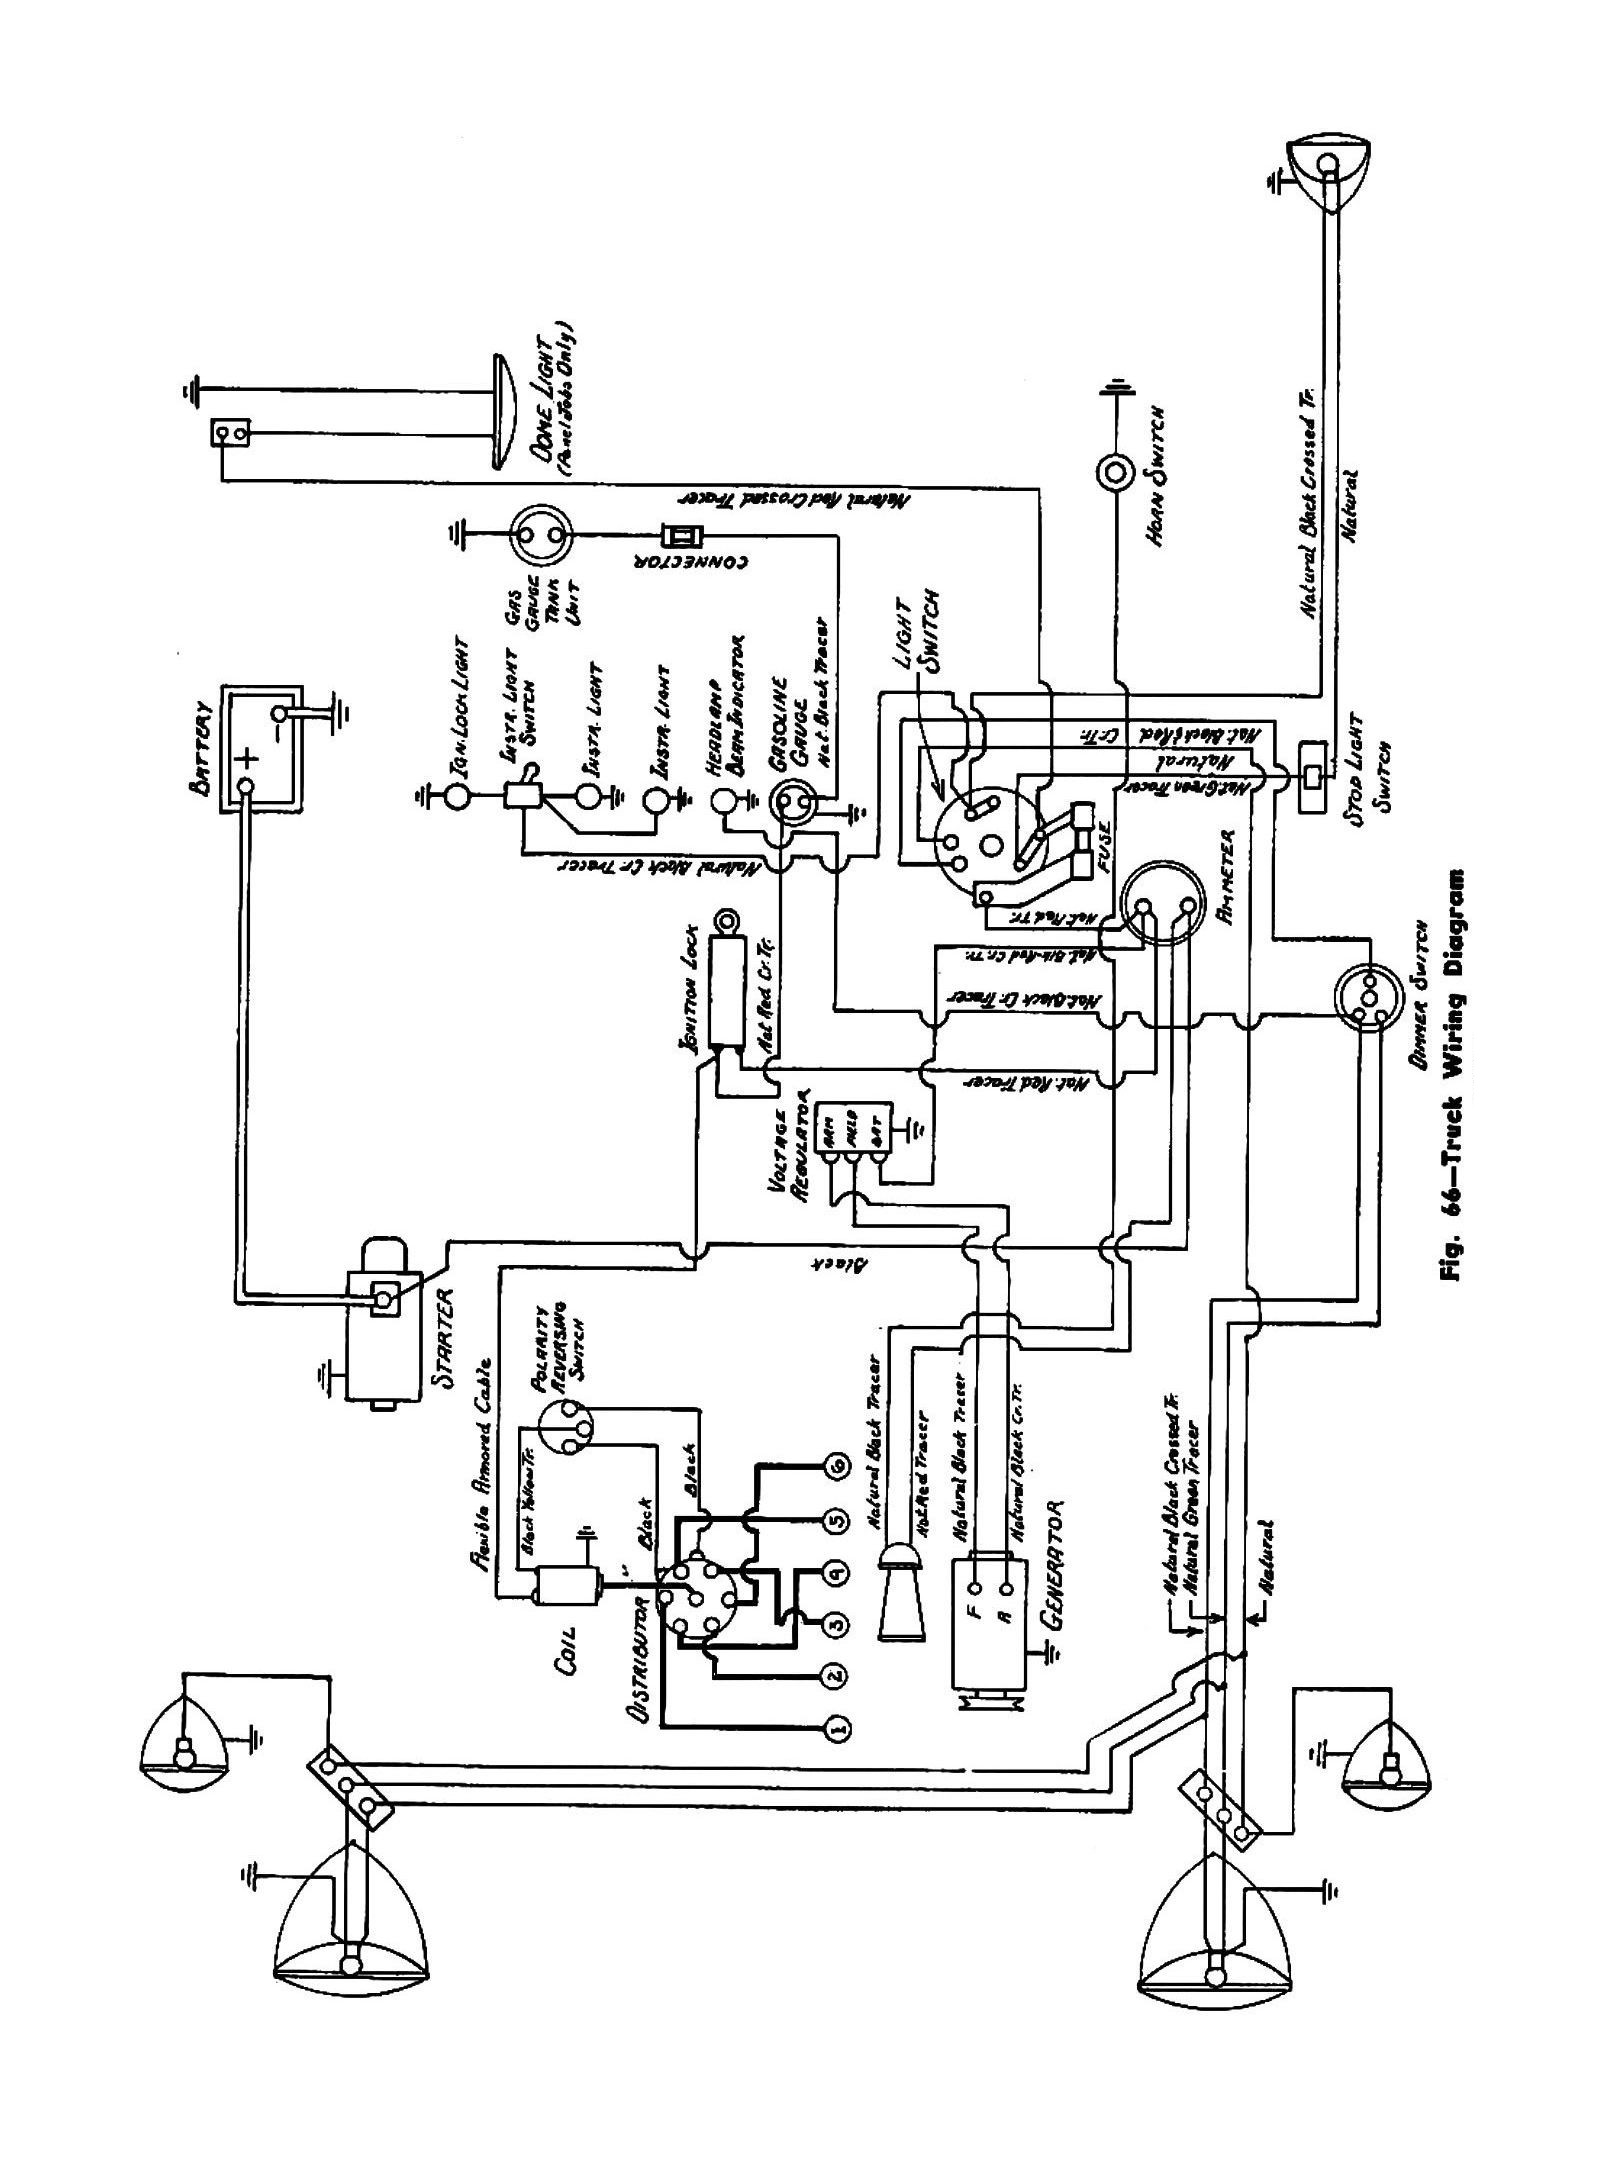 Chevrolet Truck Schematics Wiring Diagram Database